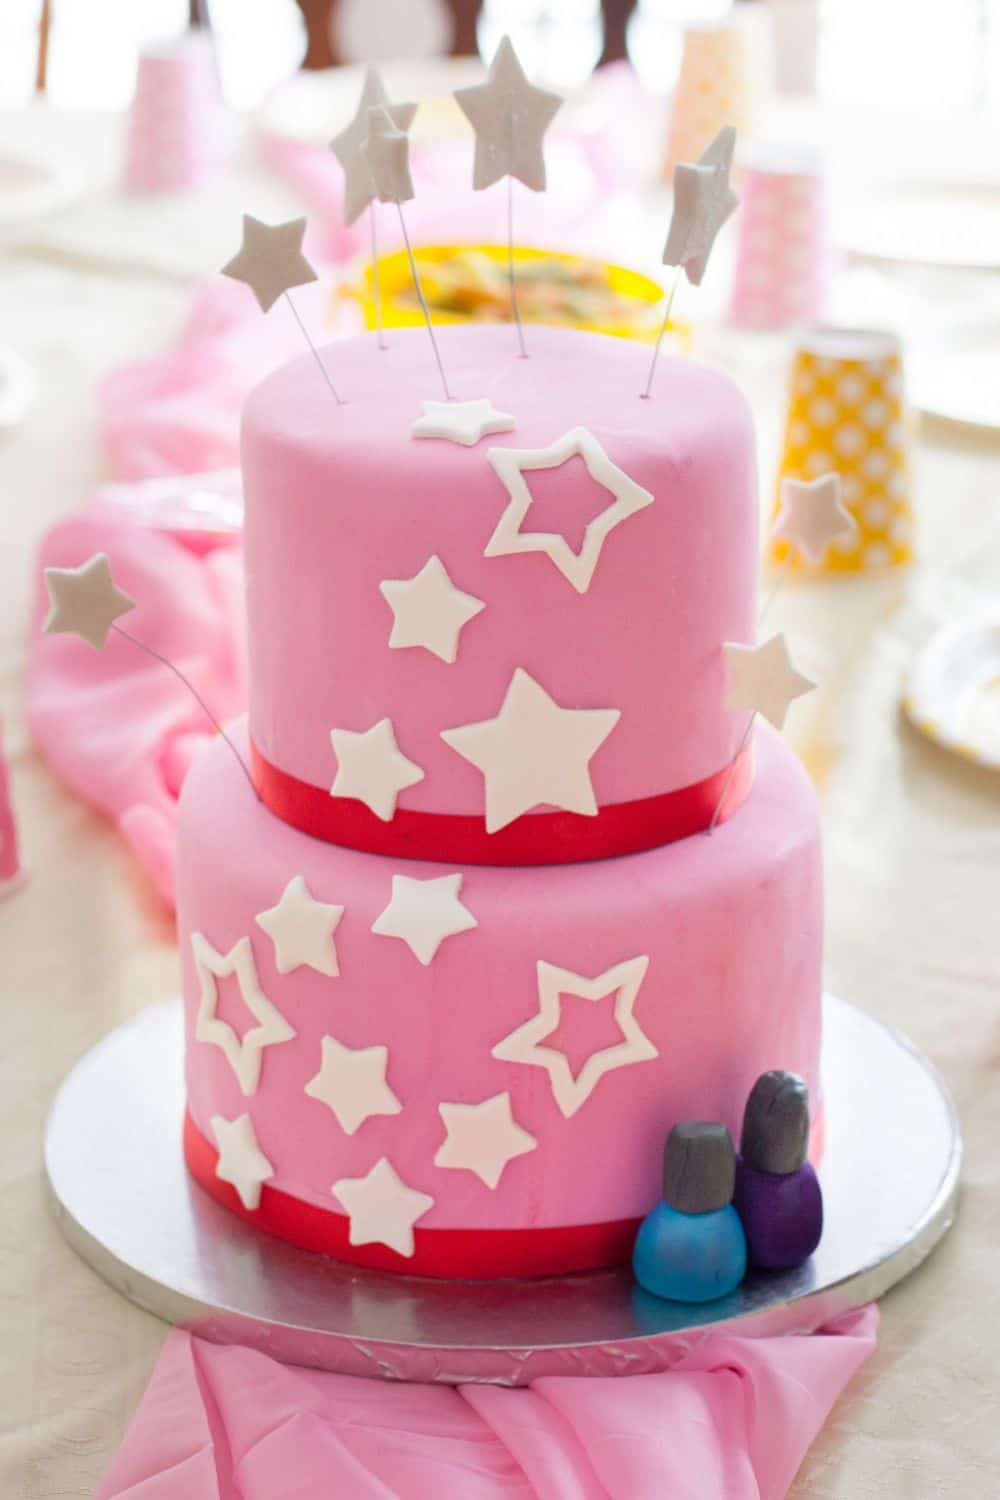 How To Decorate Number Cakes